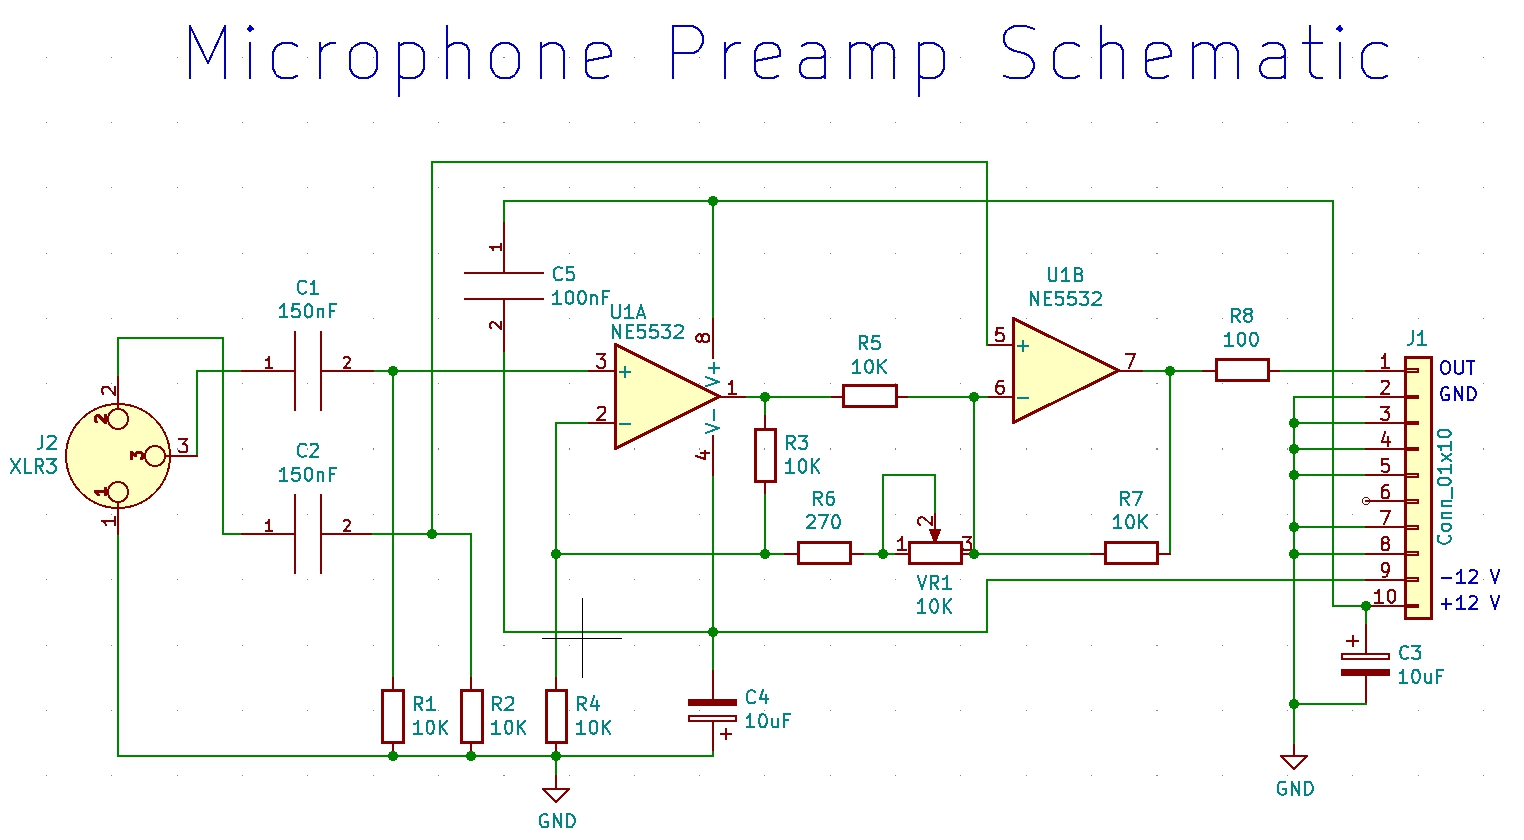 GitHub - naufalboys/Mic-Preamp: A simple mic preamp for ... on receiver schematic, vibrato schematic, wireless schematic, reverb schematic, power schematic, amp schematic, switch schematic, tremolo schematic, rectifier schematic, keyboard schematic, input schematic, speakers schematic, computer schematic, distortion schematic, compressor schematic, radio schematic, guitar schematic, tube schematic,